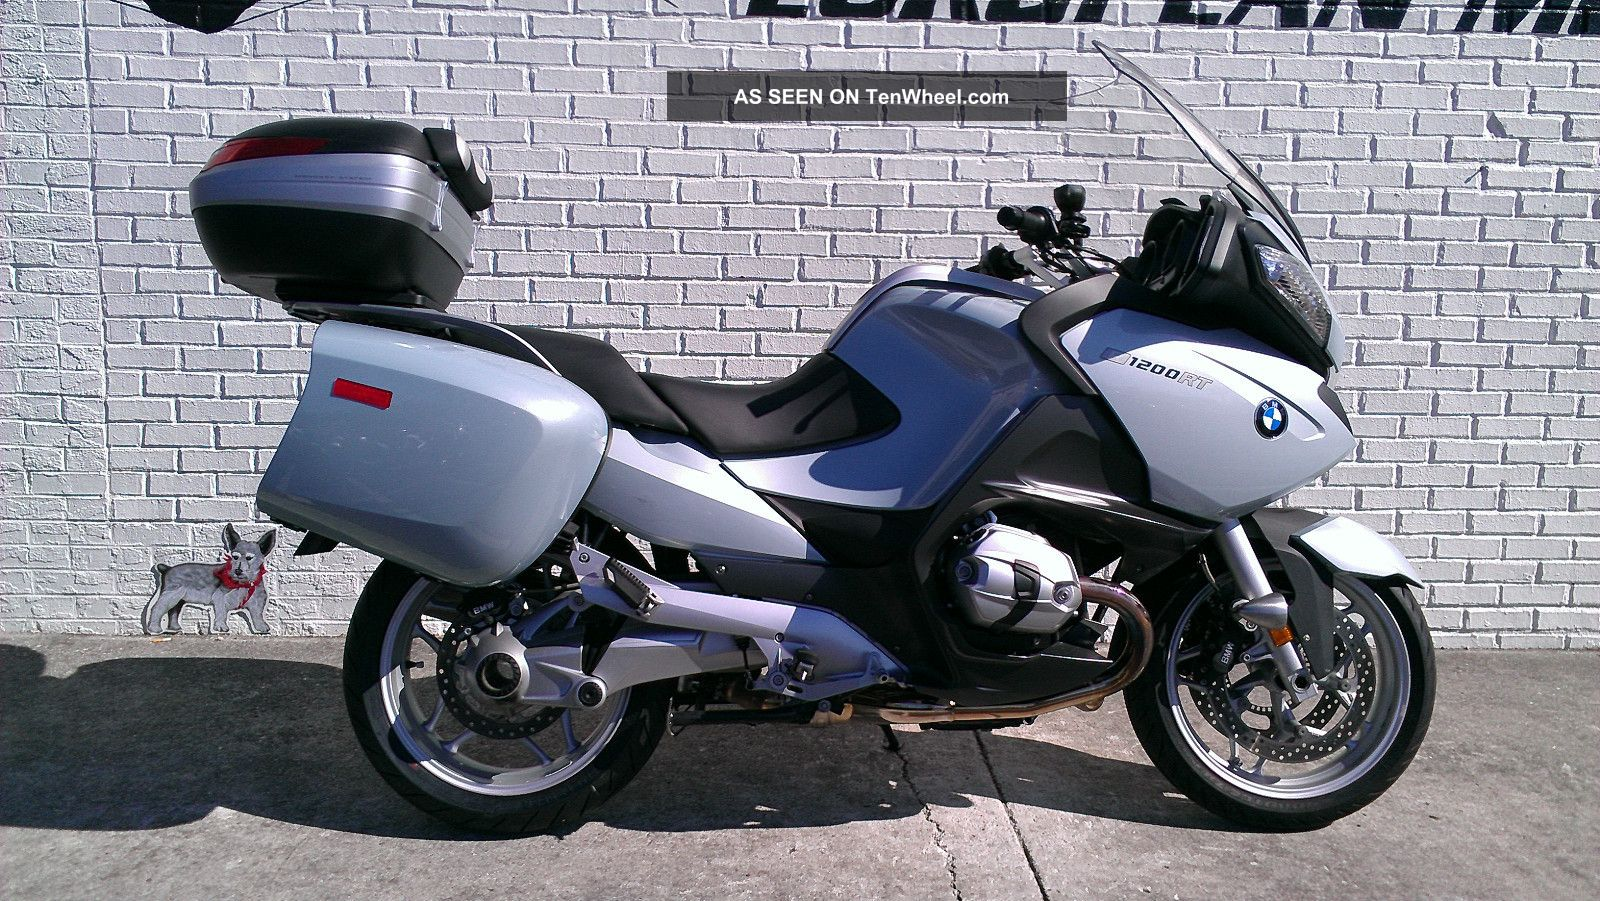 2010 Bmw R1200 Rt With Extras R 1200 Rt Other photo